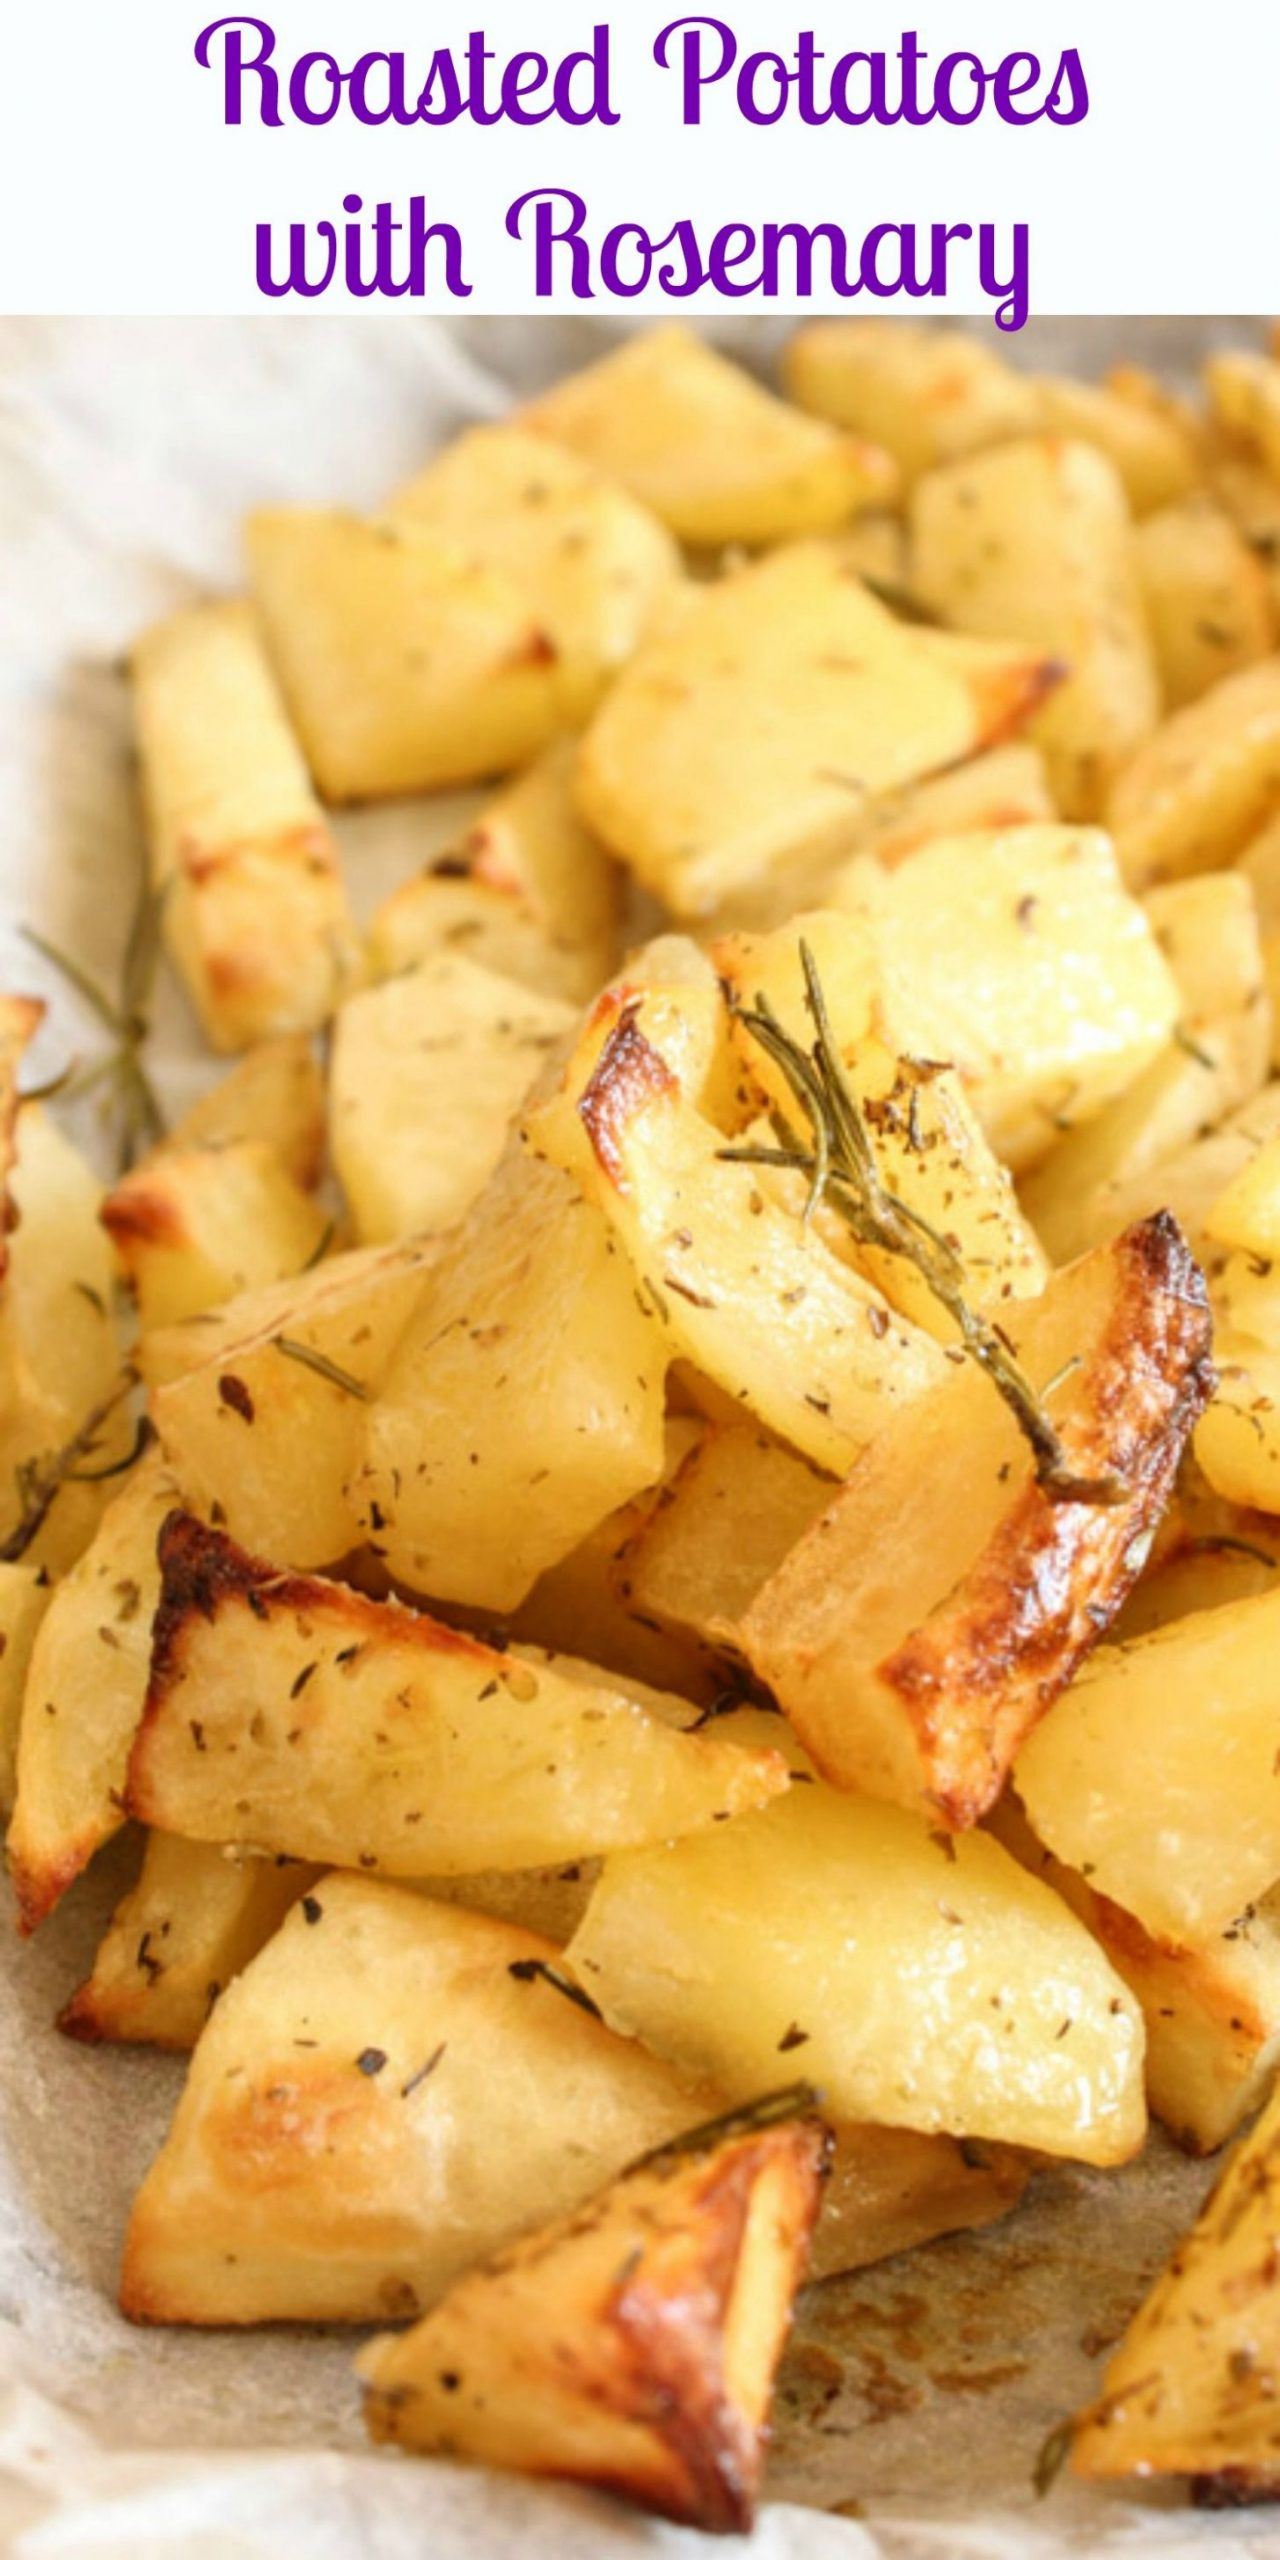 Roasted Potatoes with Rosemary, easy, oven baked delicious ...